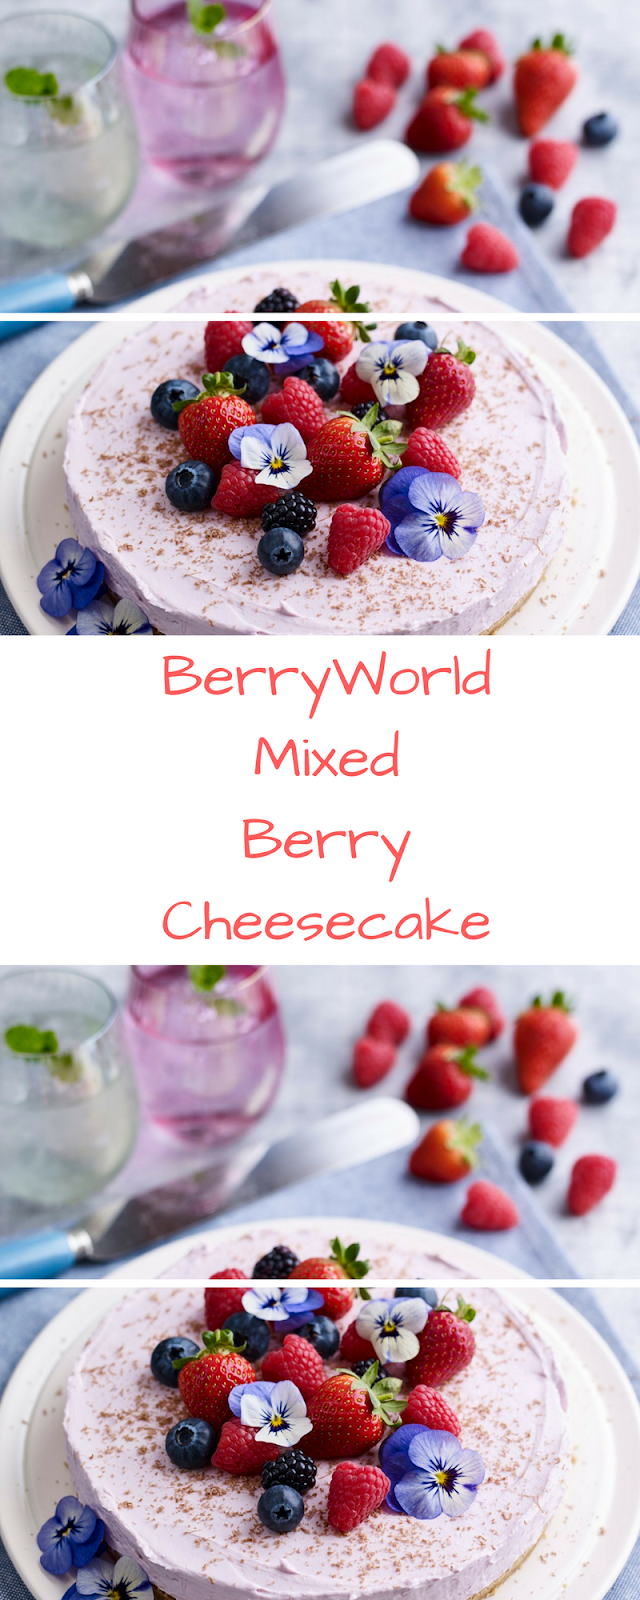 Create A Delicious BerryWorld Mixed Berry Cheesecake